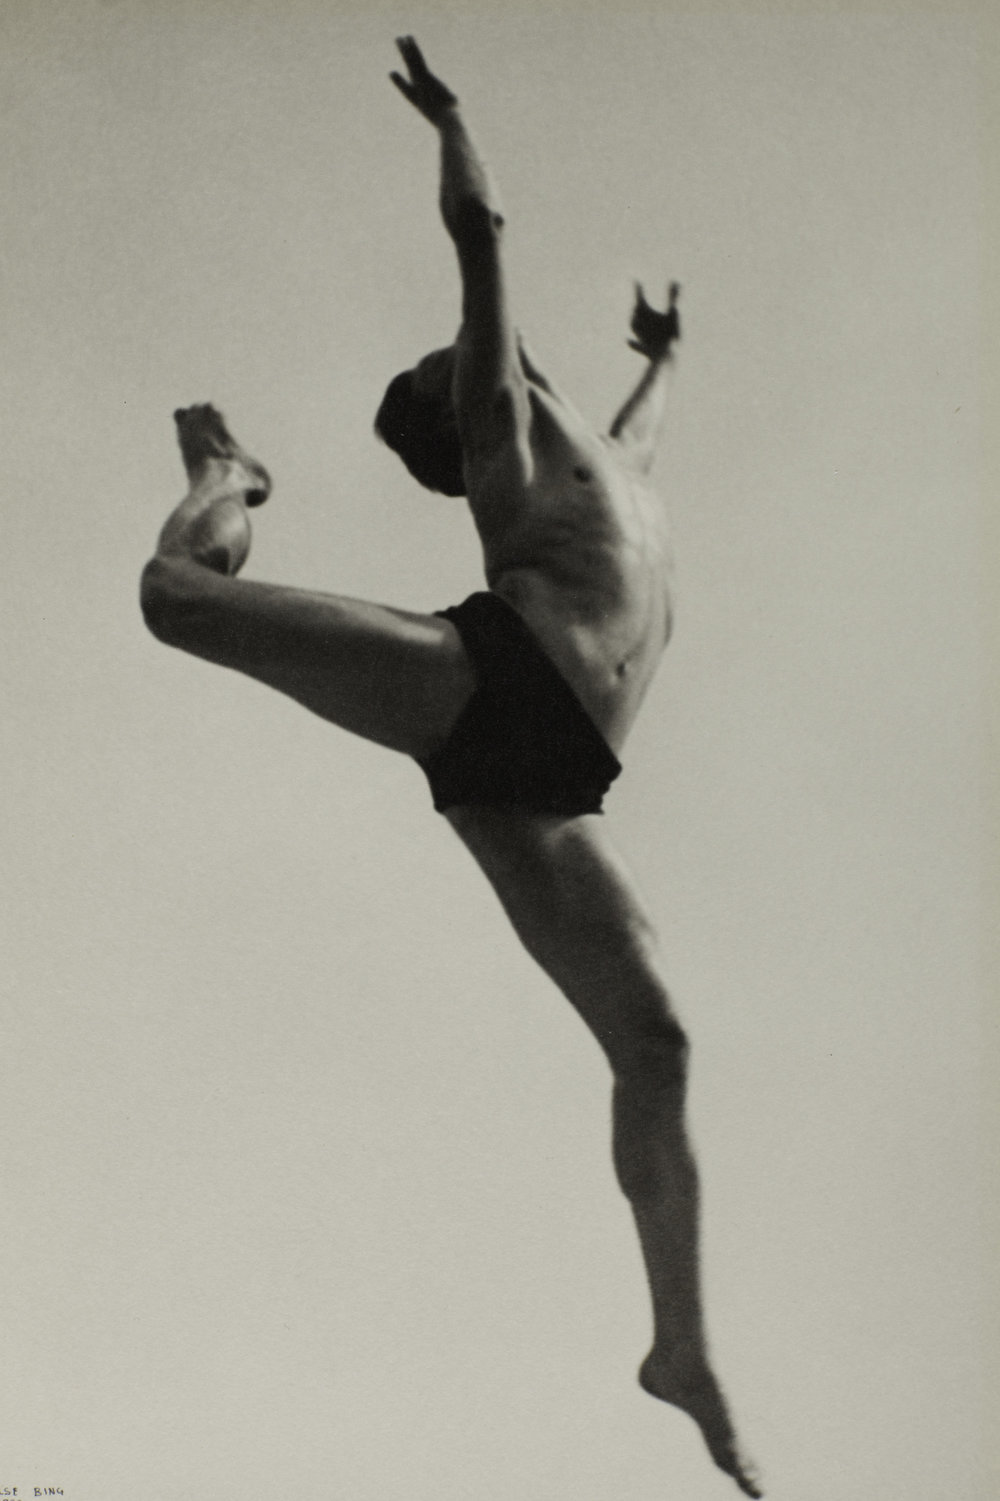 Ilse Bing, Dancer, Willem van Loon, Paris, 1932, Photograph, gelatin silver print on paper, 276 x 184 mm, The Sir Elton John Photography Collection, © The Estate of Ilse Bing.